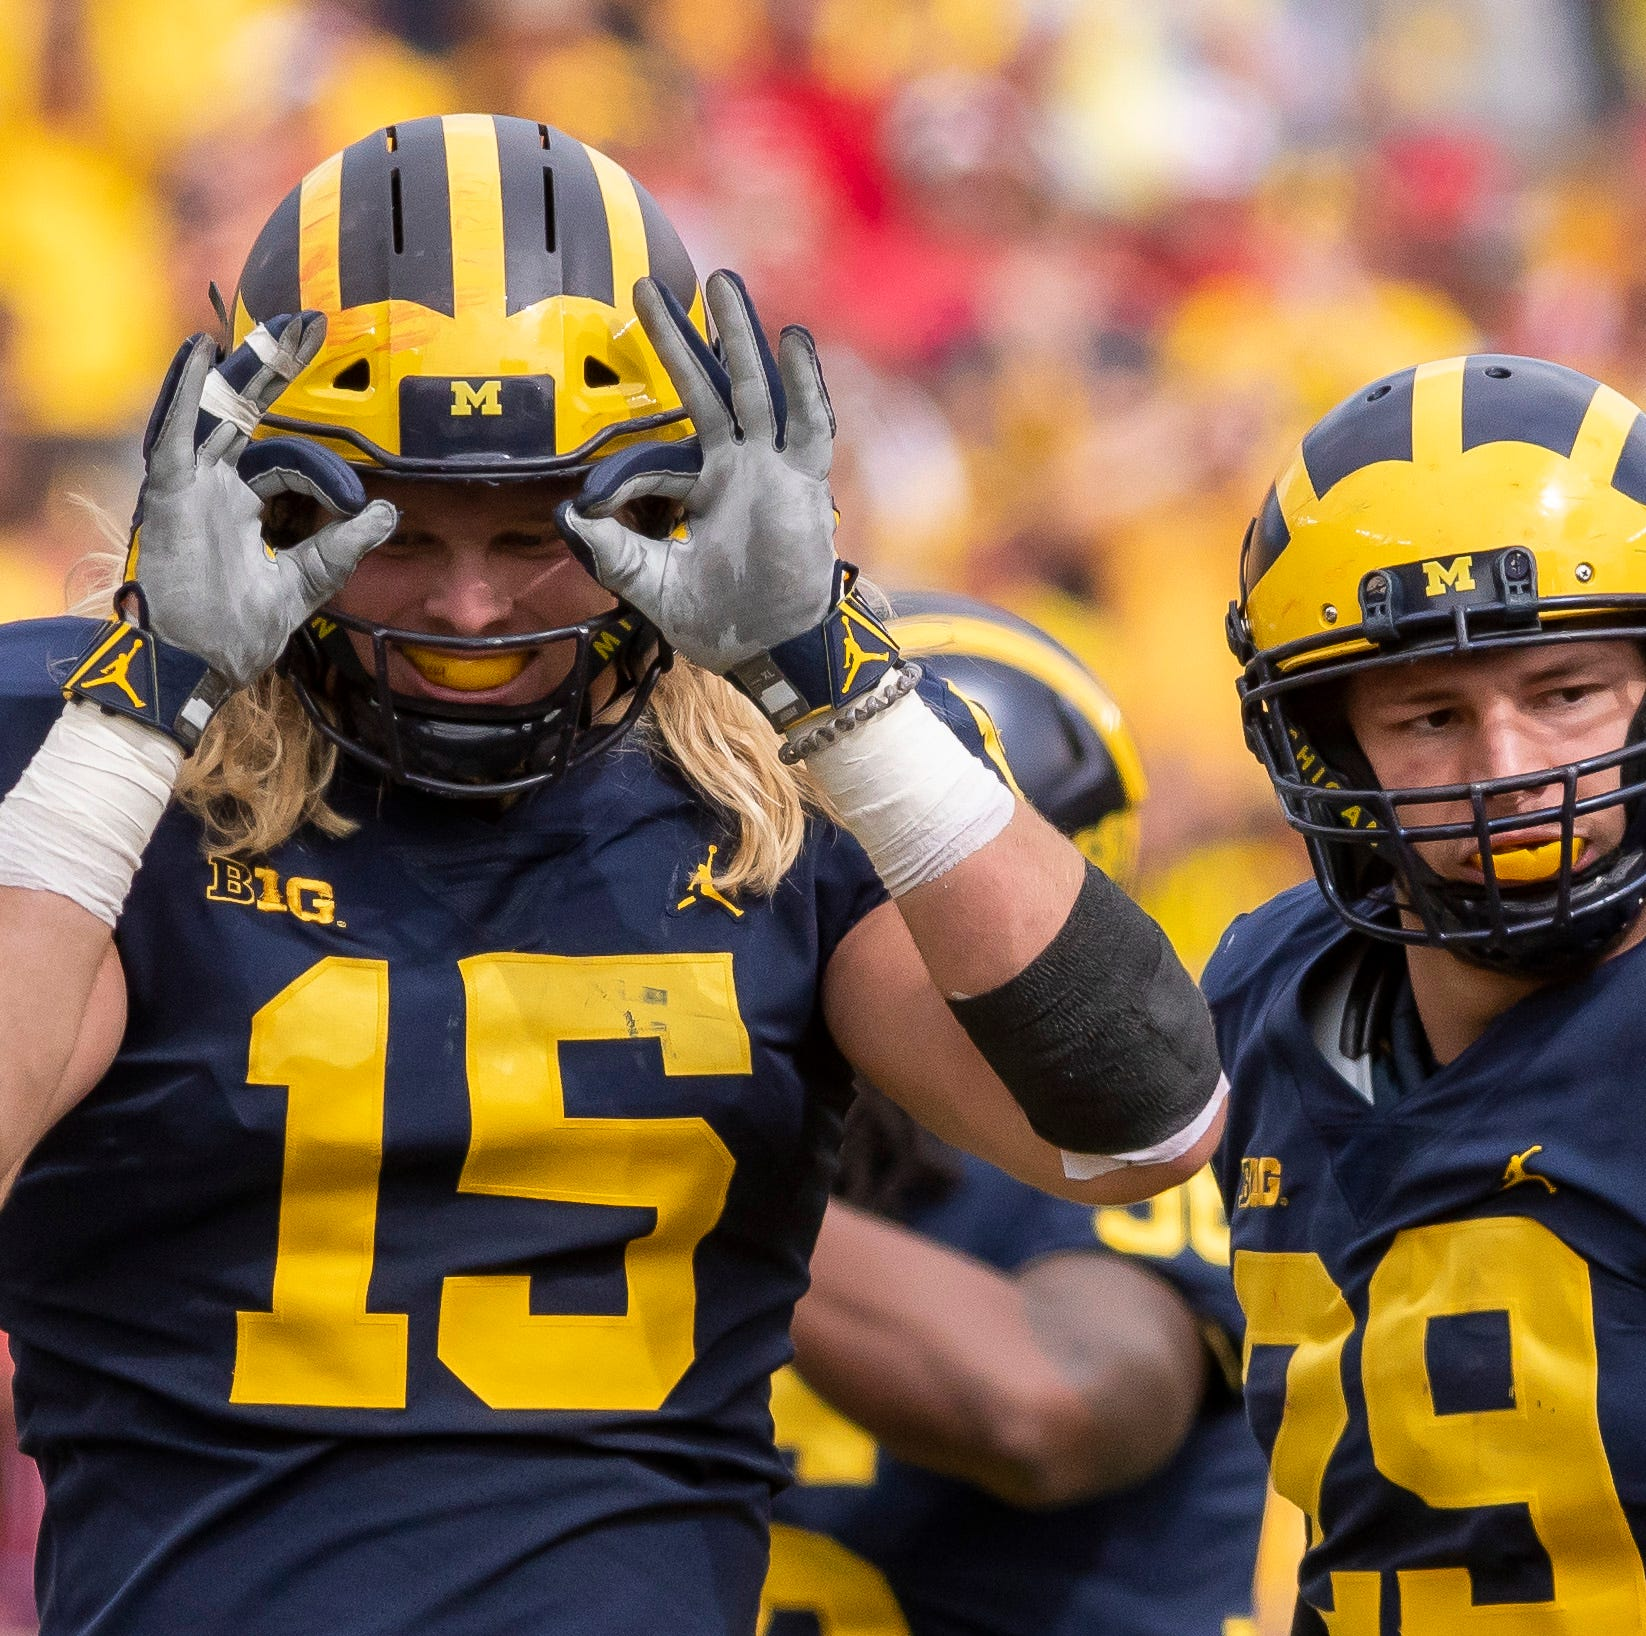 UM's Chase Winovich named first-team All-American on AP's midseason list